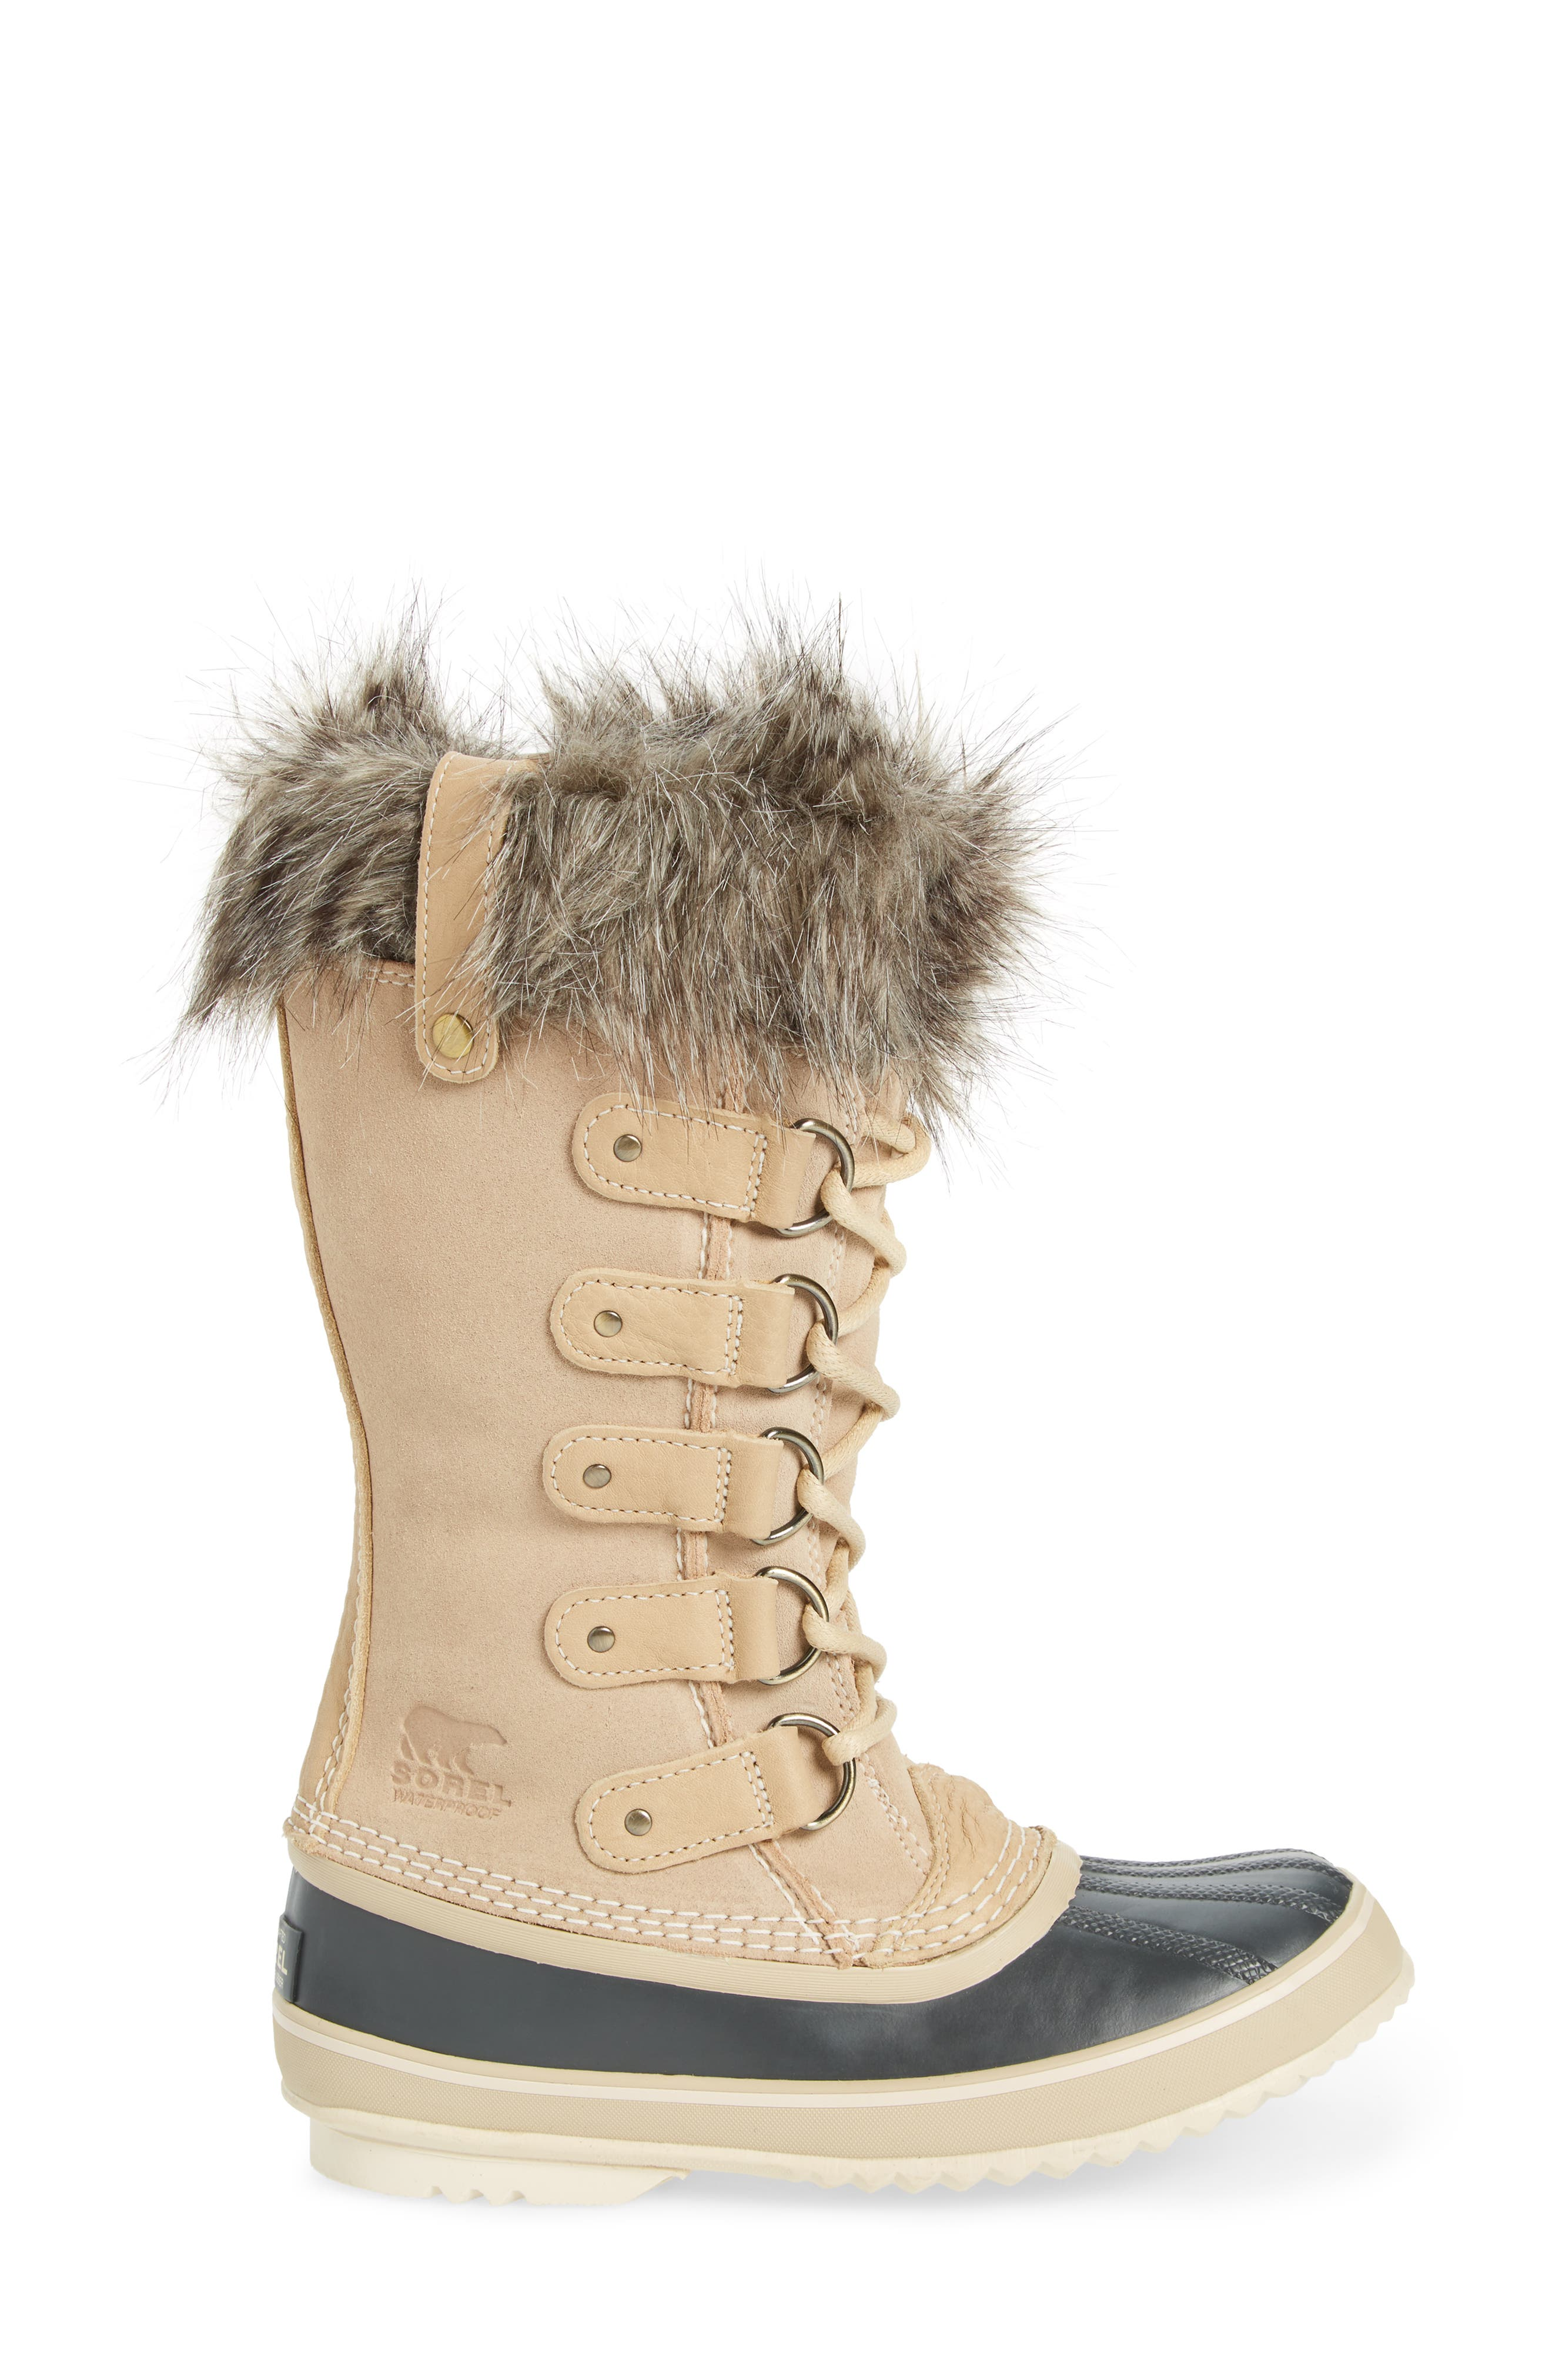 Alternate Image 3  - SOREL 'Joan of Arctic' Waterproof Snow Boot